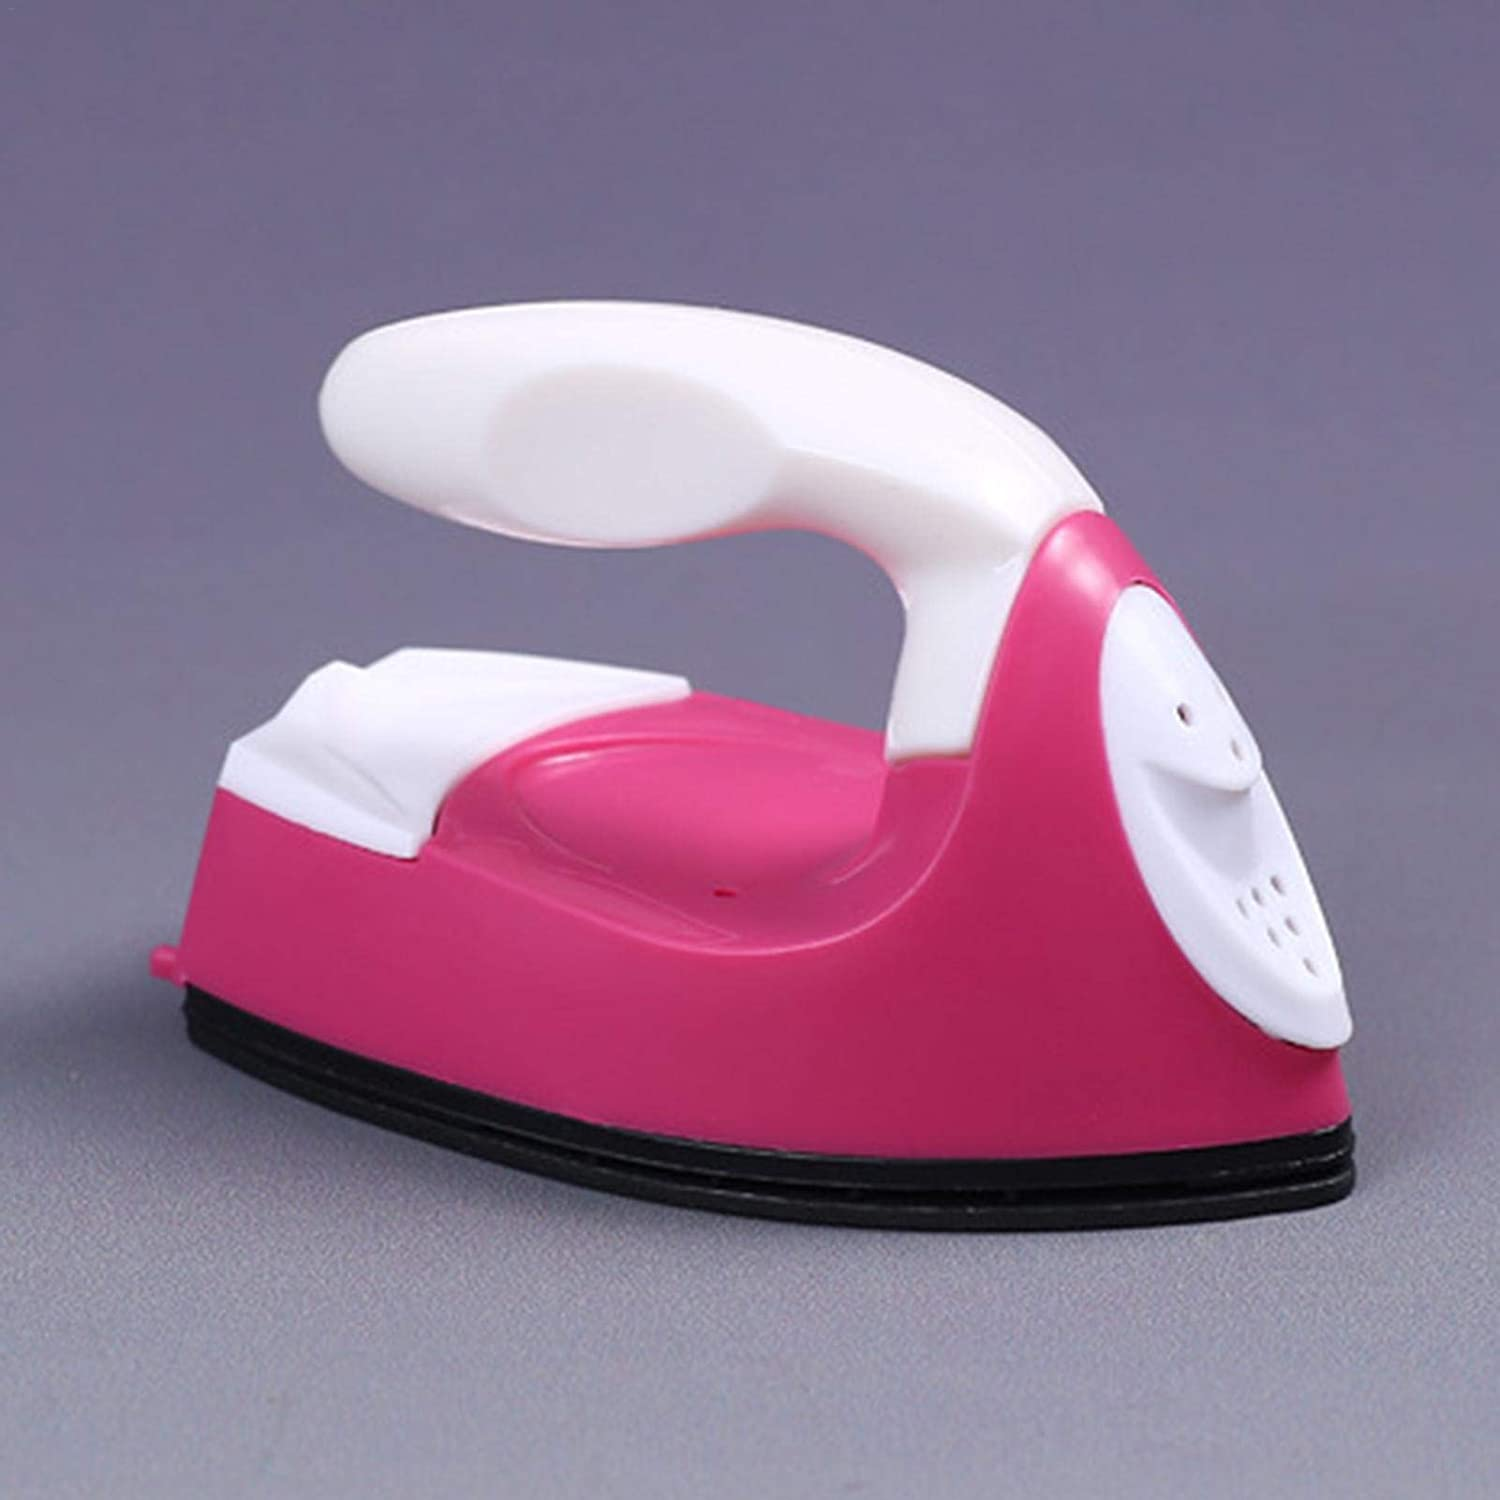 Small Portable Travel Clothes Crafting Sewing Supplies Nonstick Soleplate Lightweight Iron Steamers Heat up Fulstarshop Mini Electric Iron Handheld Steamer for Clothes Garment